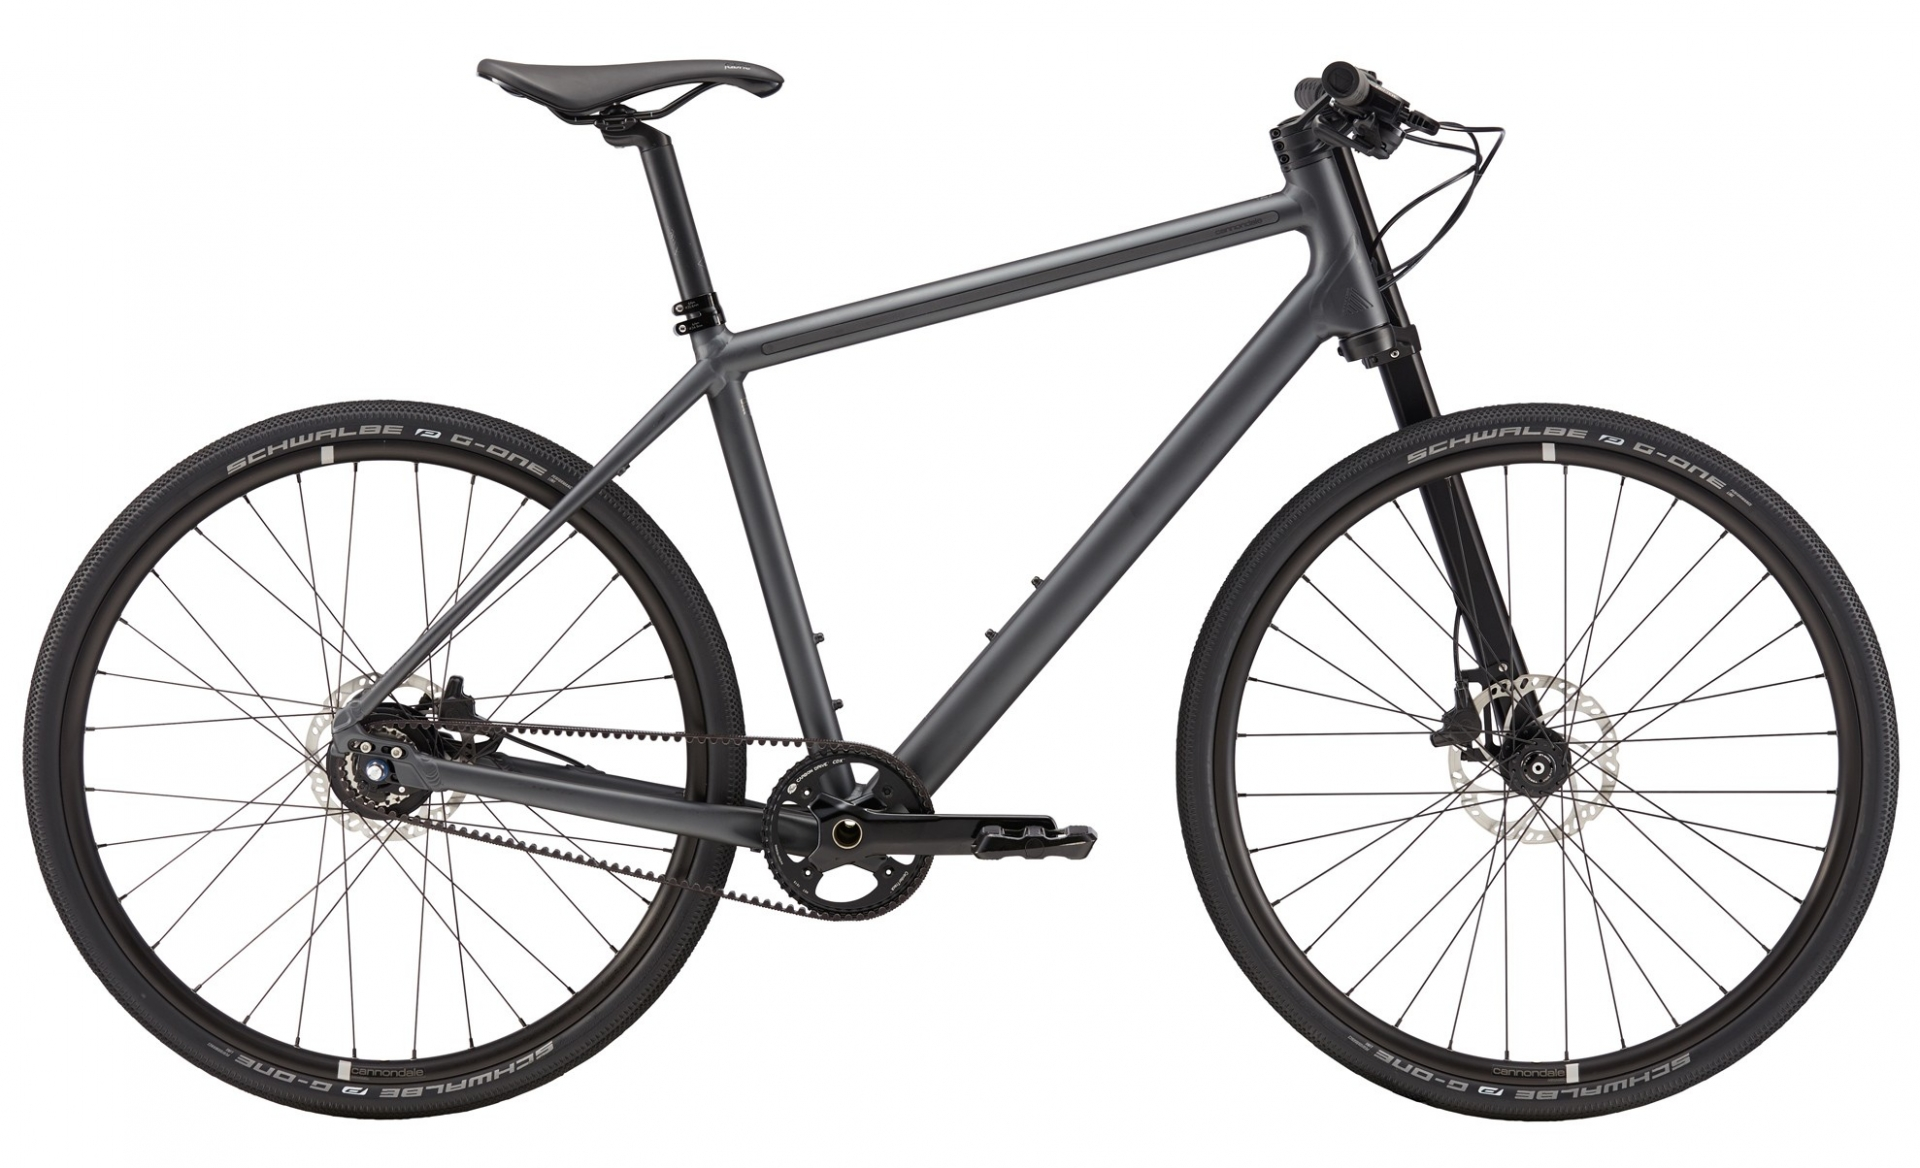 Vélo urbain Cannondale Bad Boy 1 (BBQ) - L